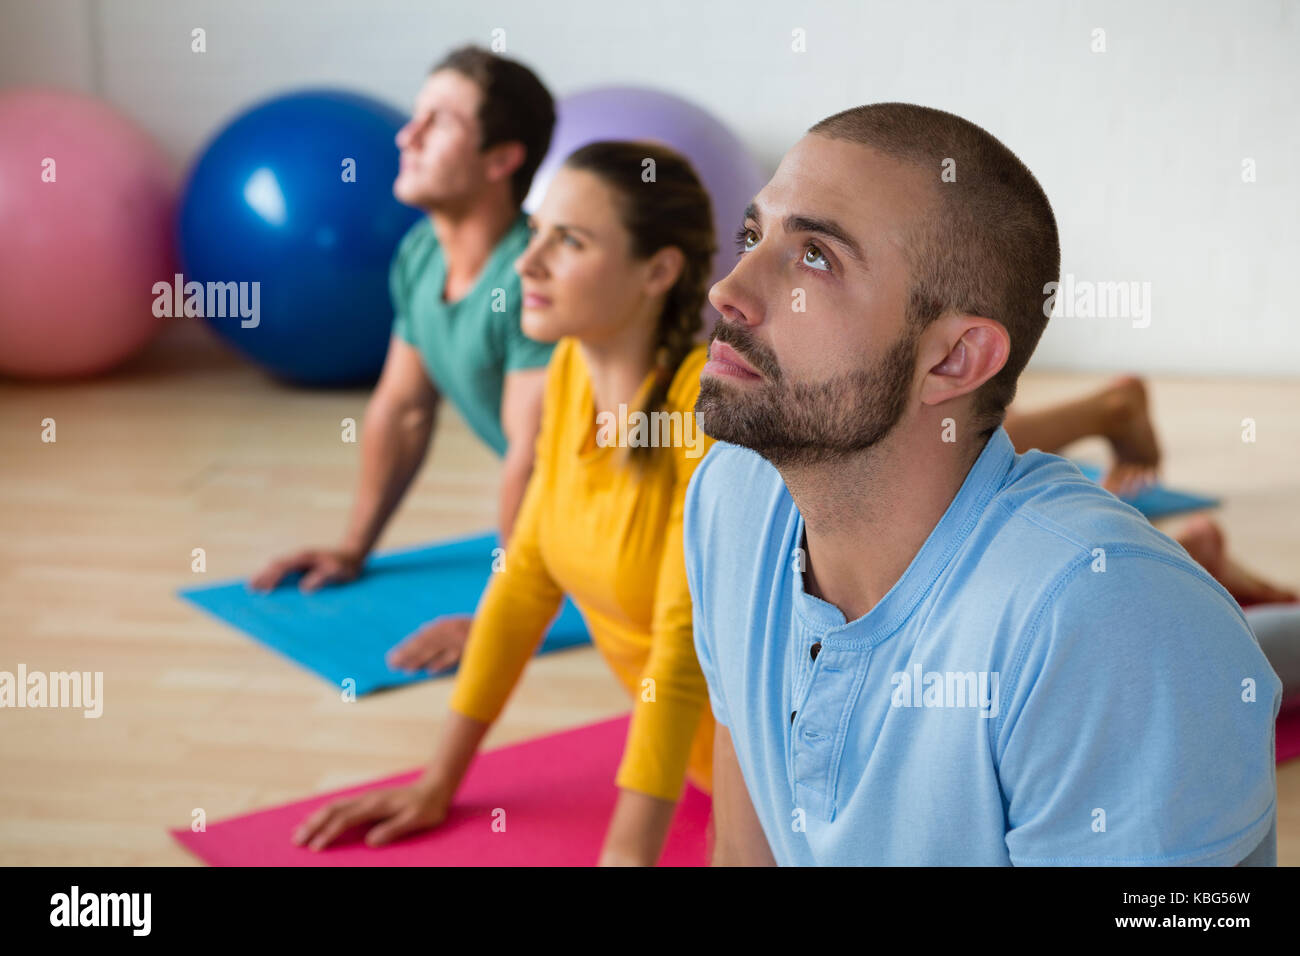 Yoga instructor guiding students in practicing cobra pose at health club - Stock Image